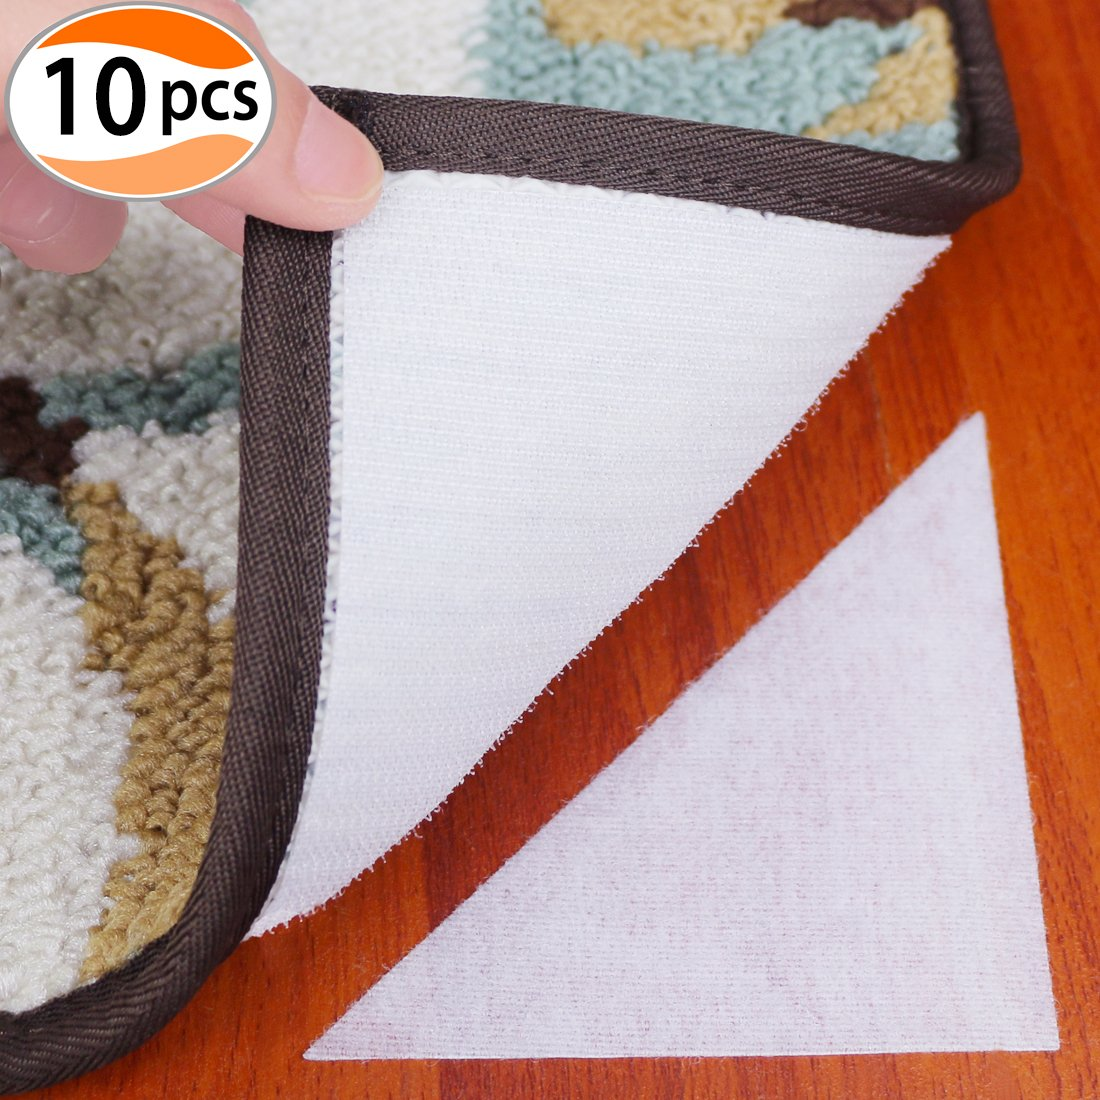 Cefanty Rug Grippers 10 Pack Square Rug Anchors Mat Pads for Carpet with Hook and Loop